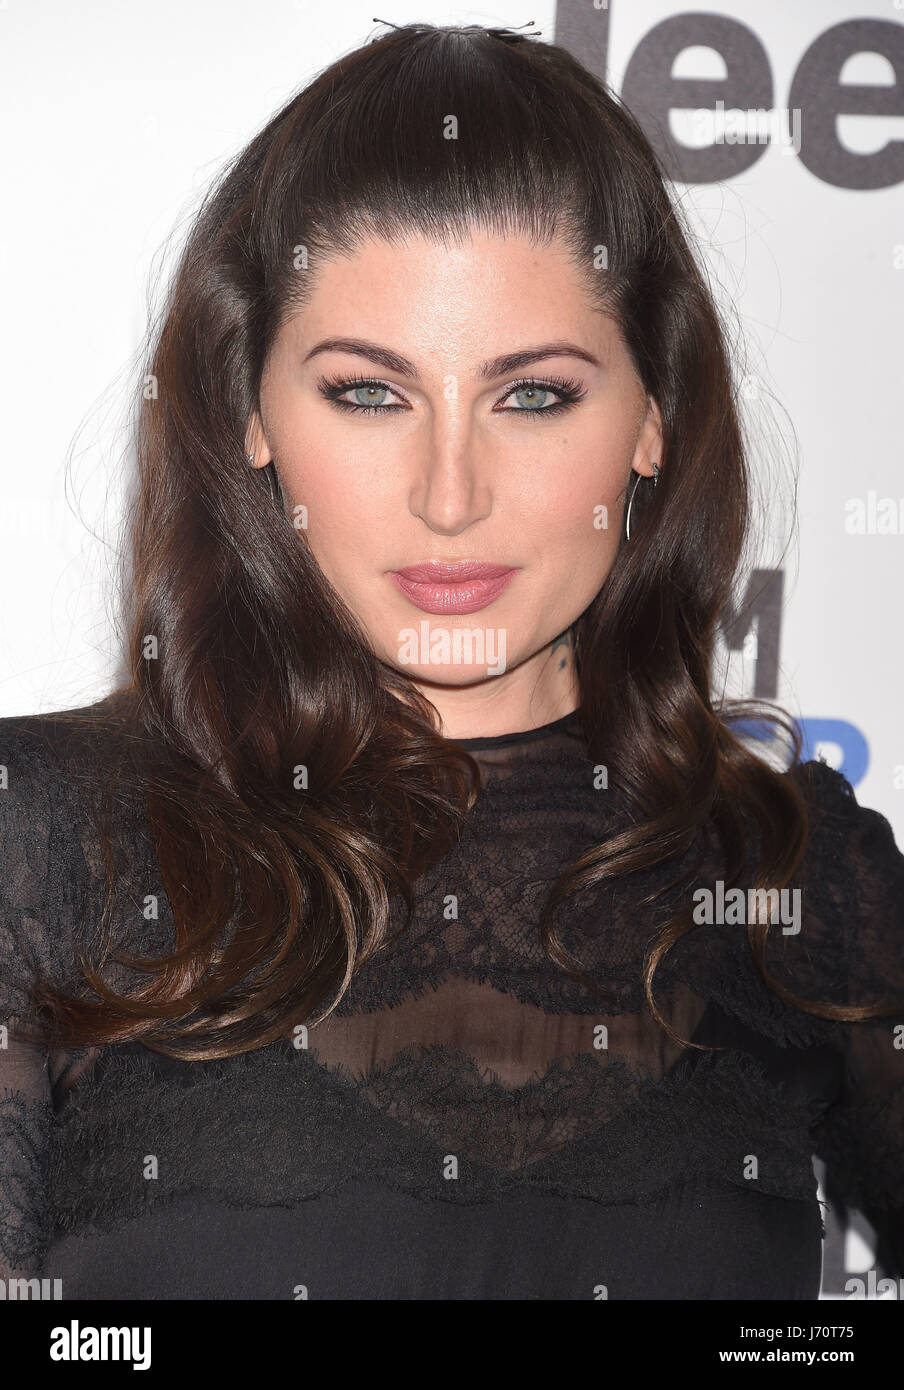 TRACE LYSETTE American trans-gender actress in February 2017. Photo Jefrey Mayer - Stock-Bilder